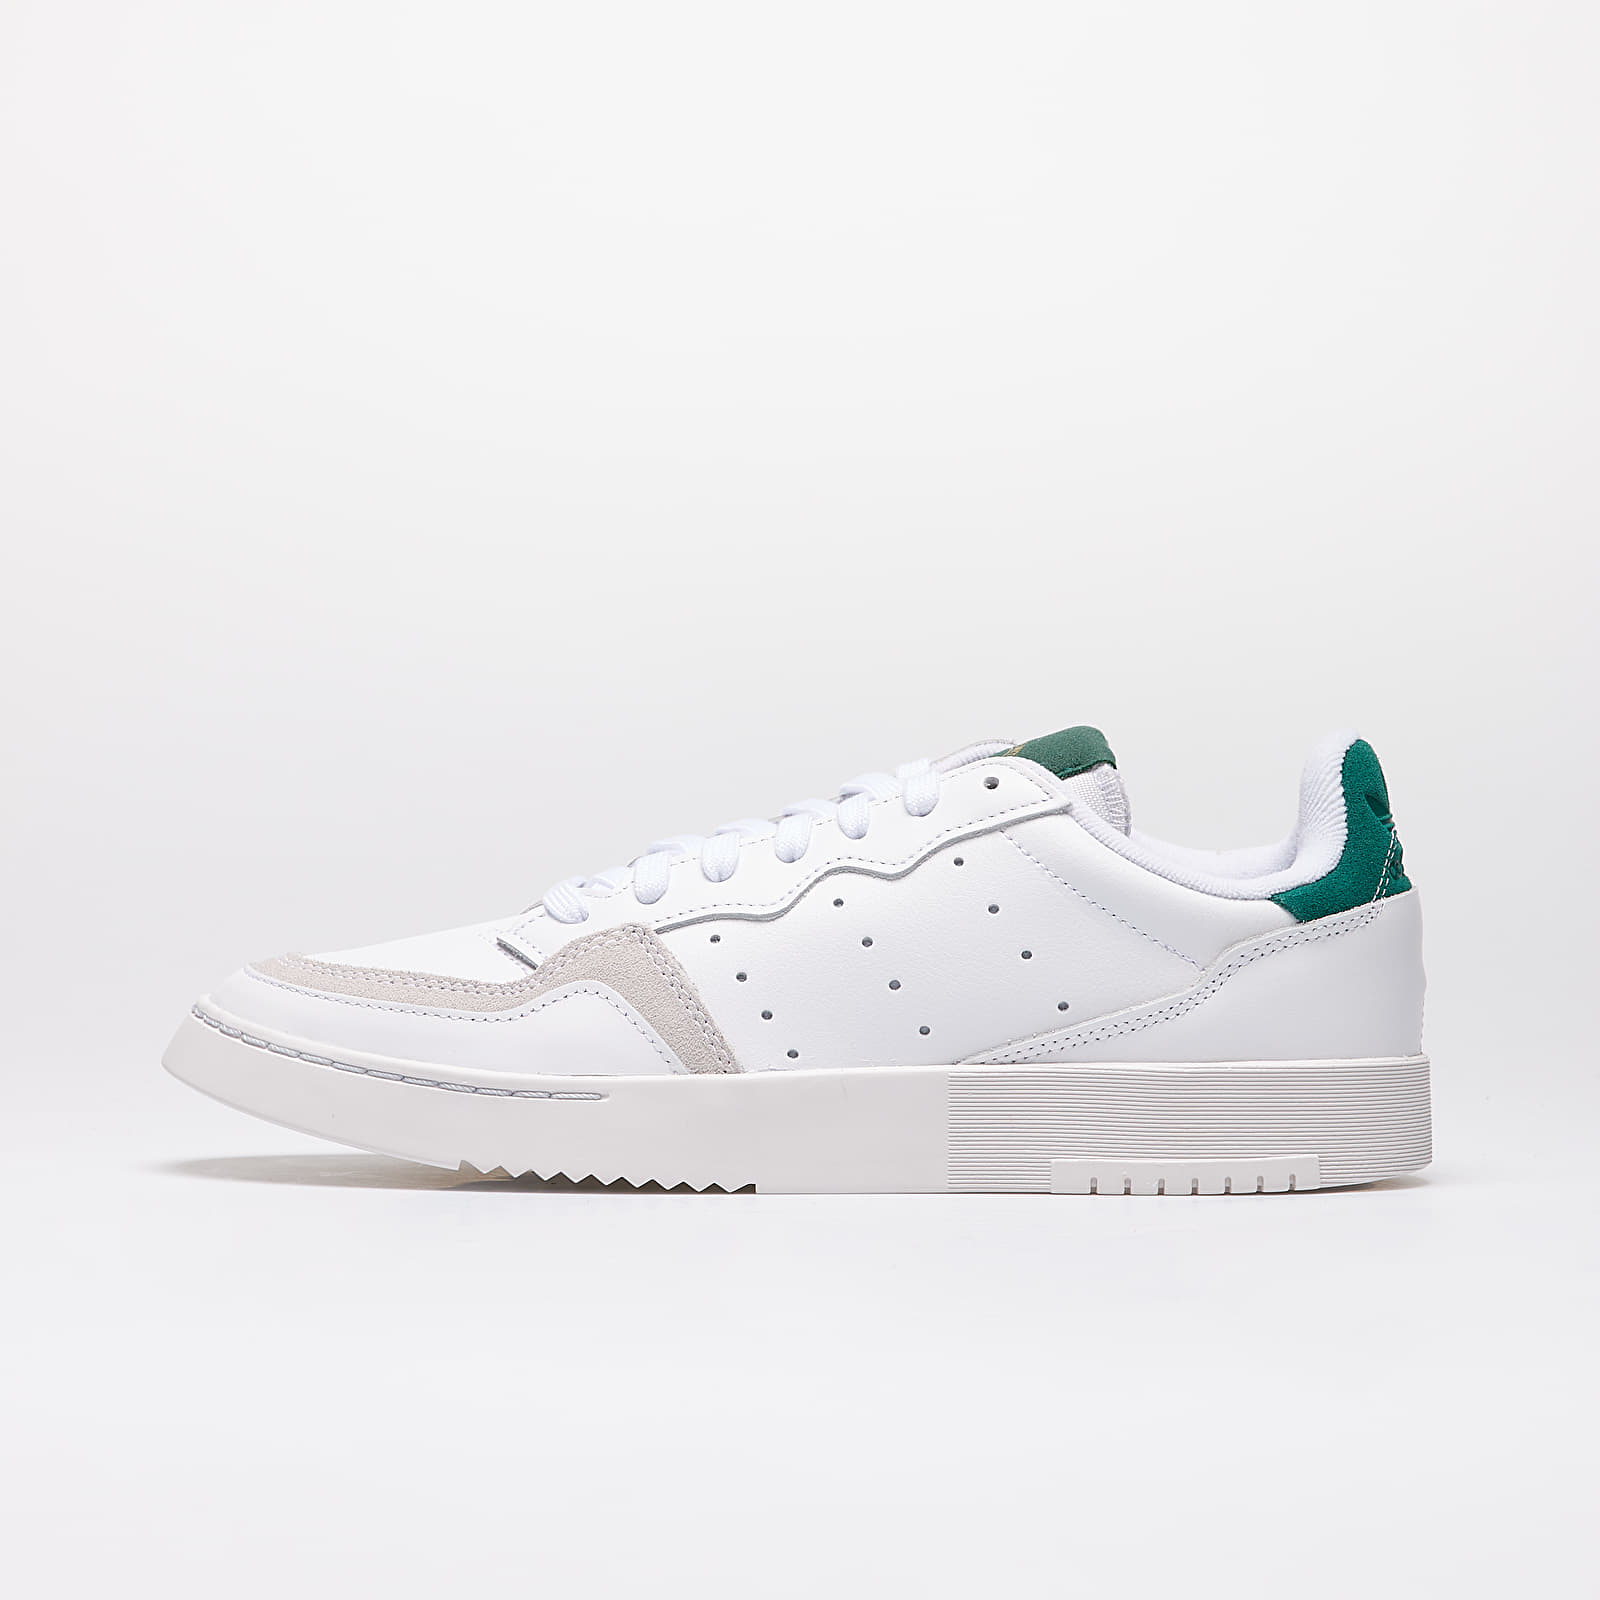 Men's shoes adidas Supercourt Ftw White/ Ftw White/ Core Green